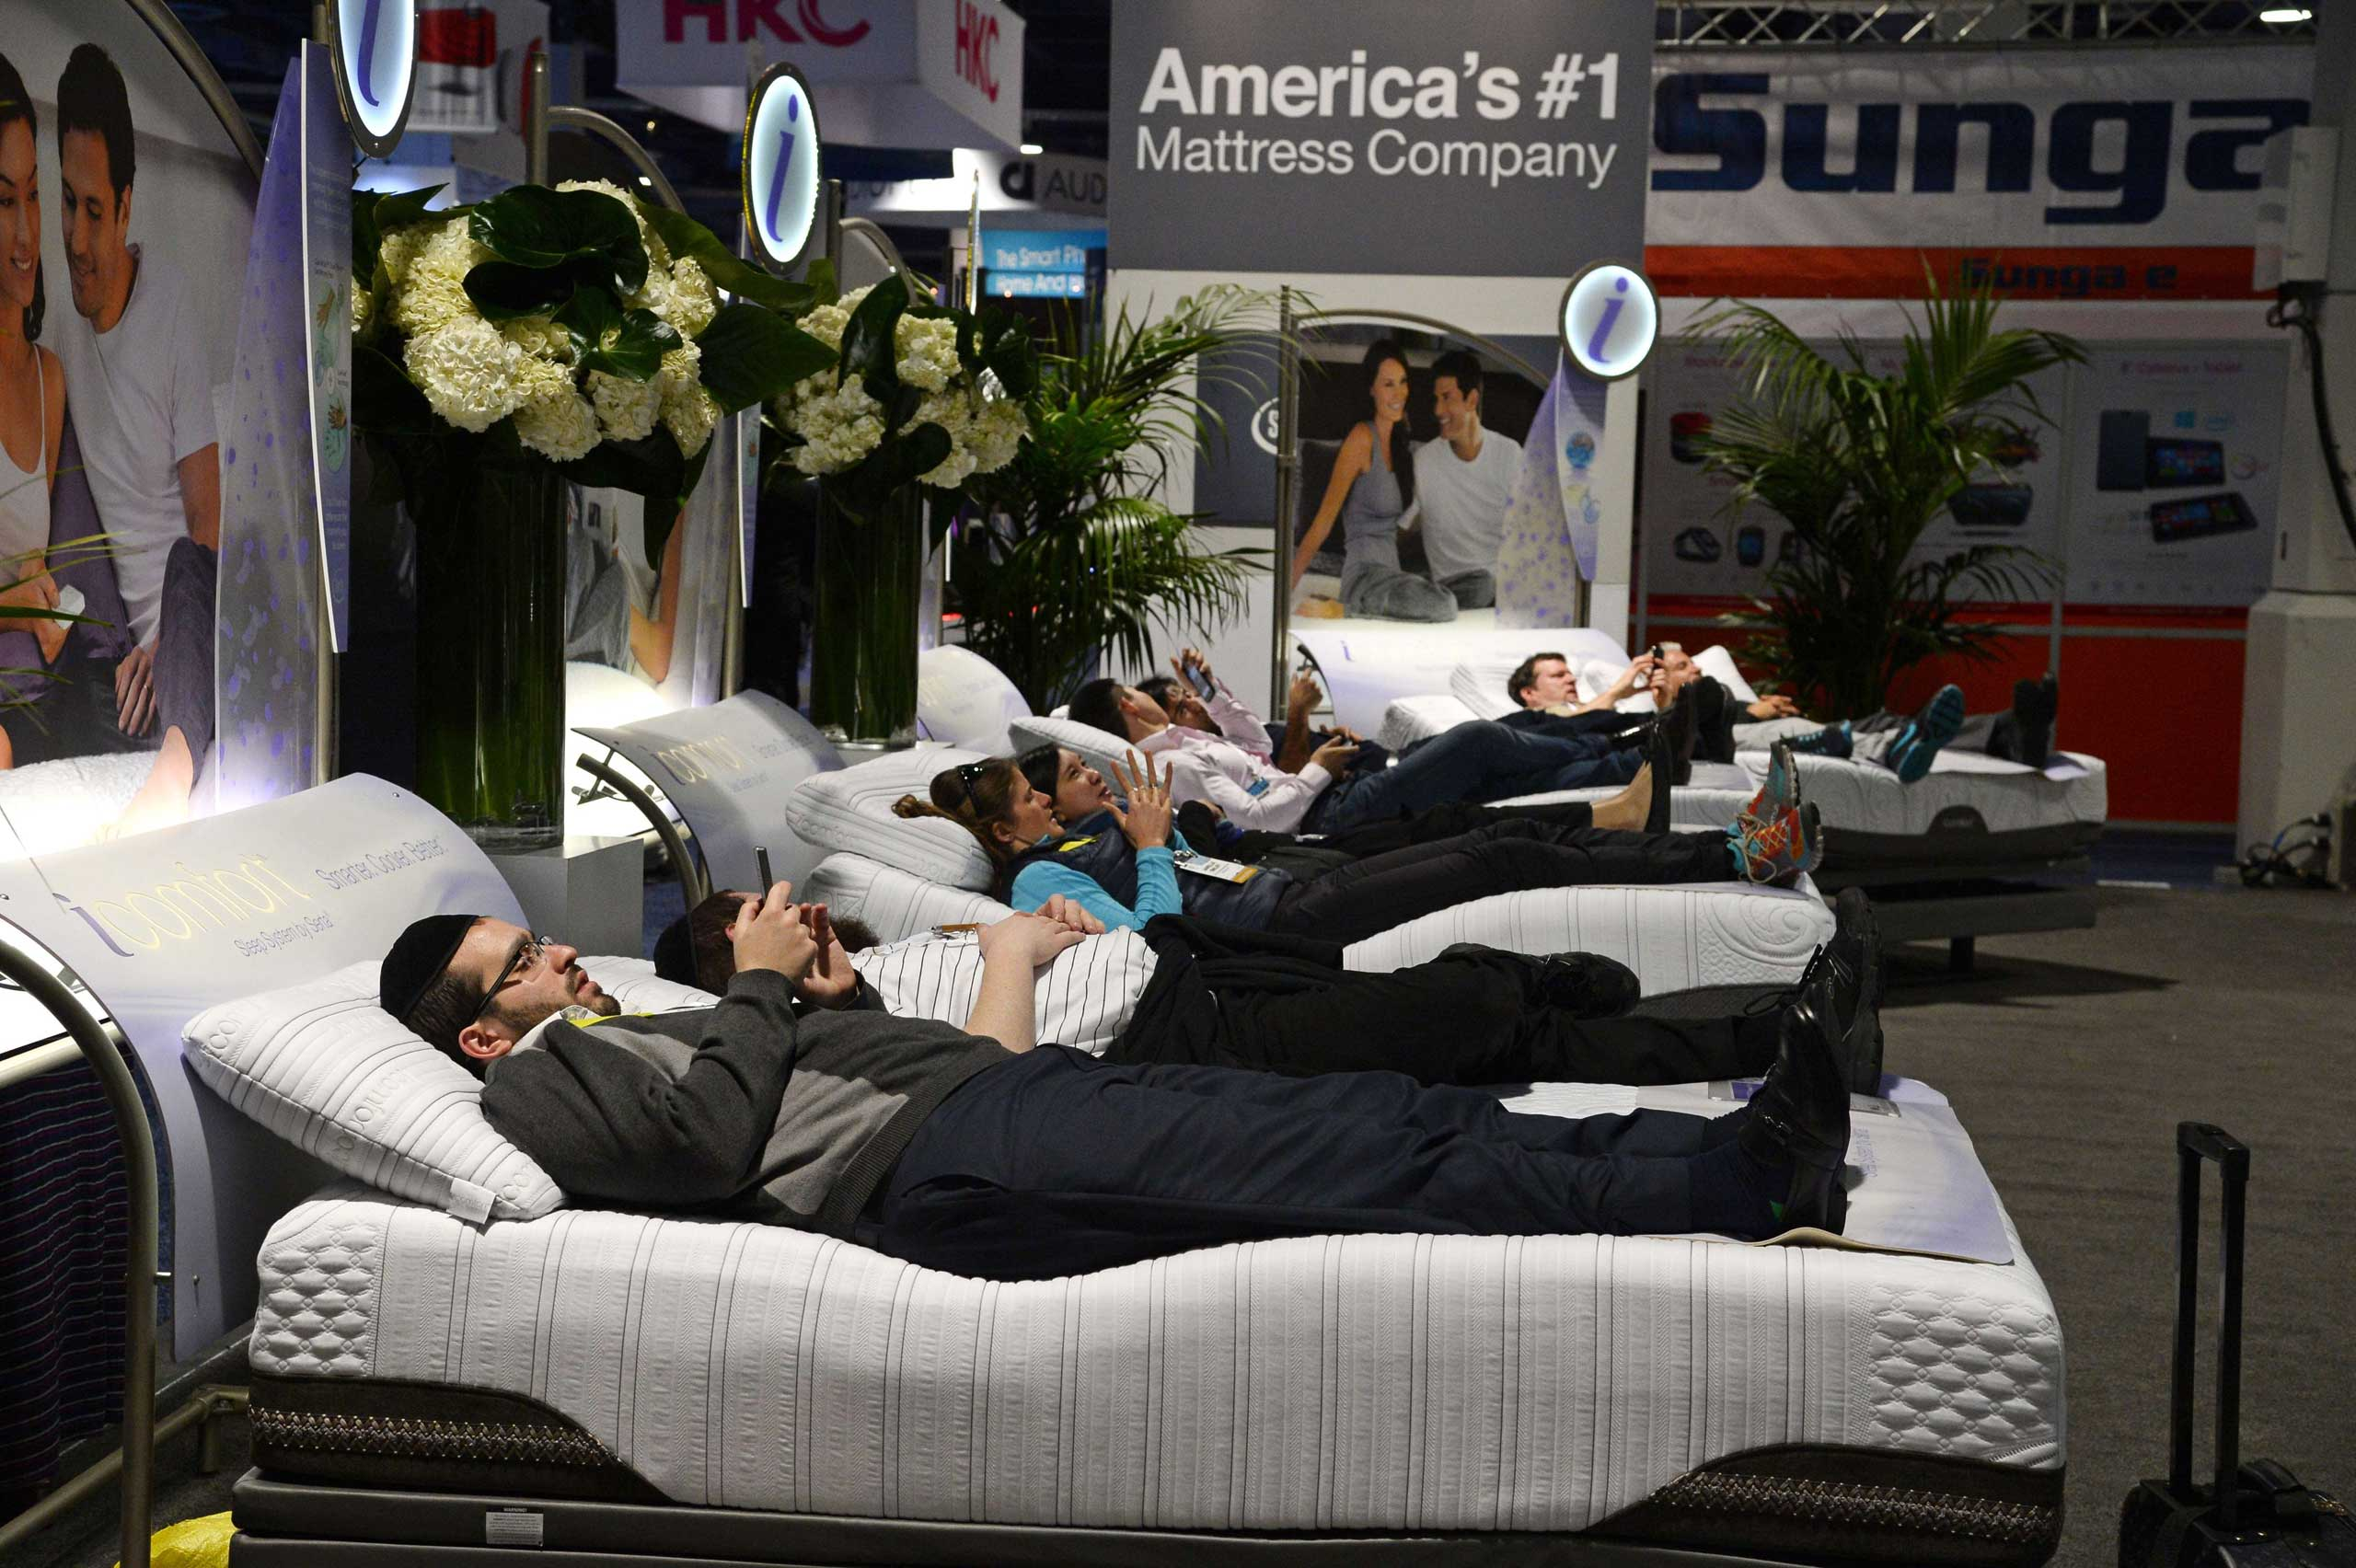 Attendees lay on Serta mattresses at the Serta stand on Jan. 6, 2015.